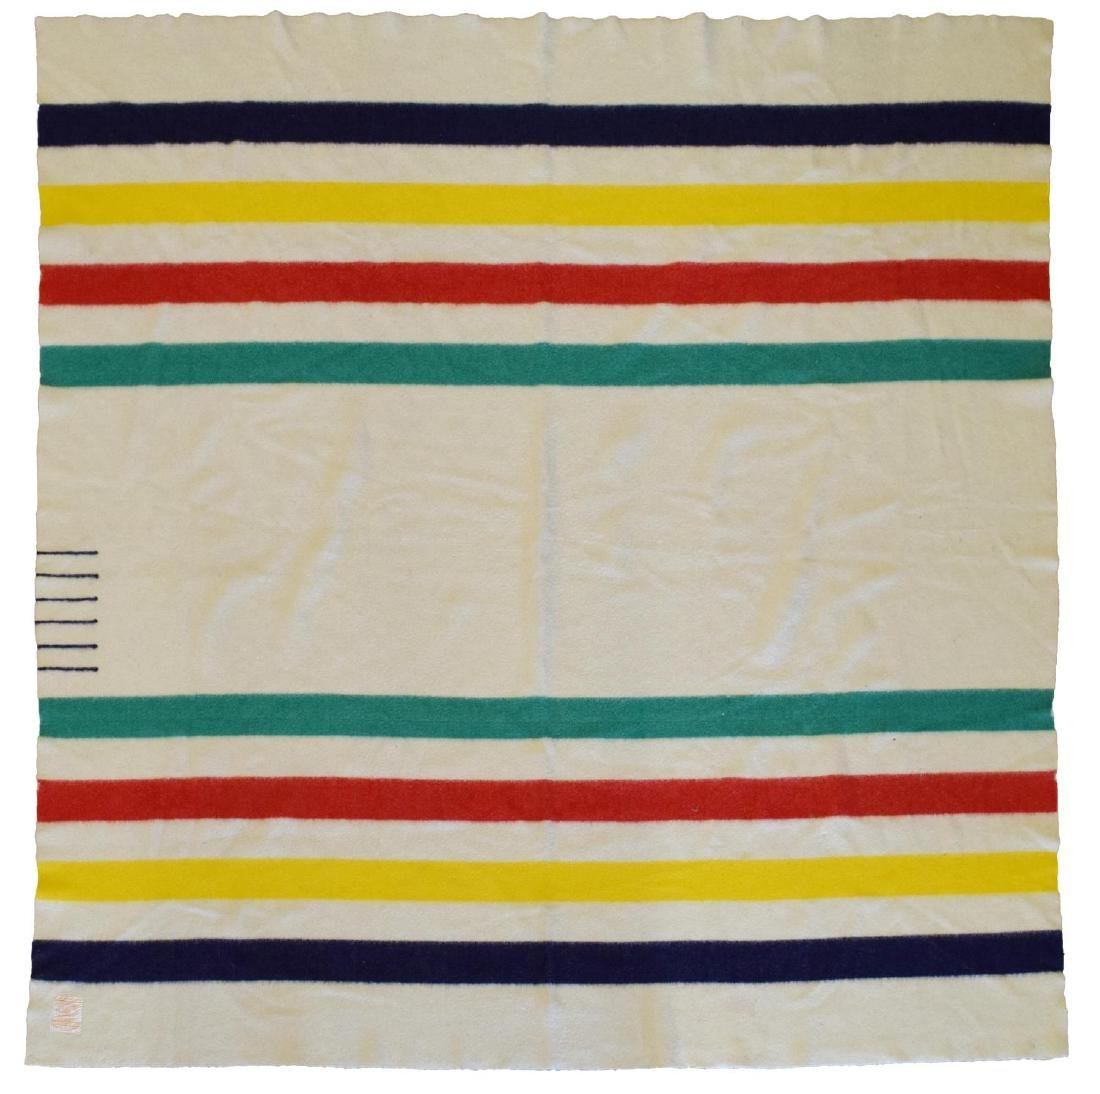 HUDSON'S BAY POINT STRIPPED WOOL BLANKET